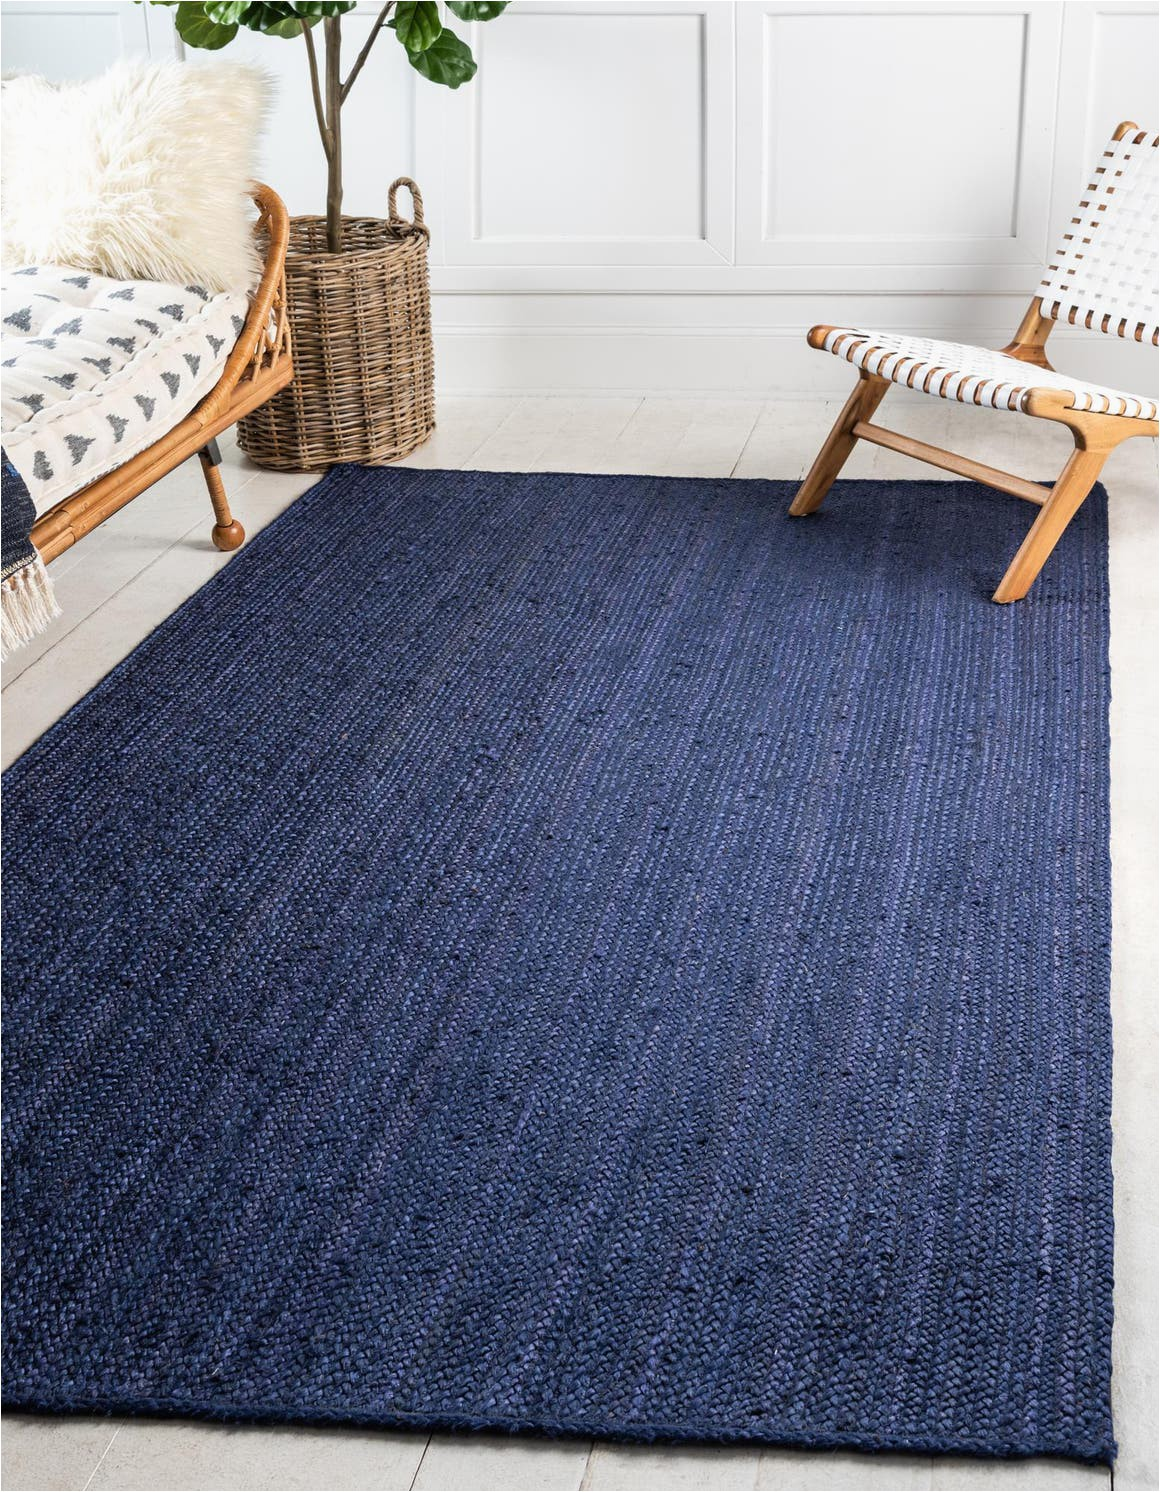 navy blue 8x10 braided jute area rug rt=bbsize